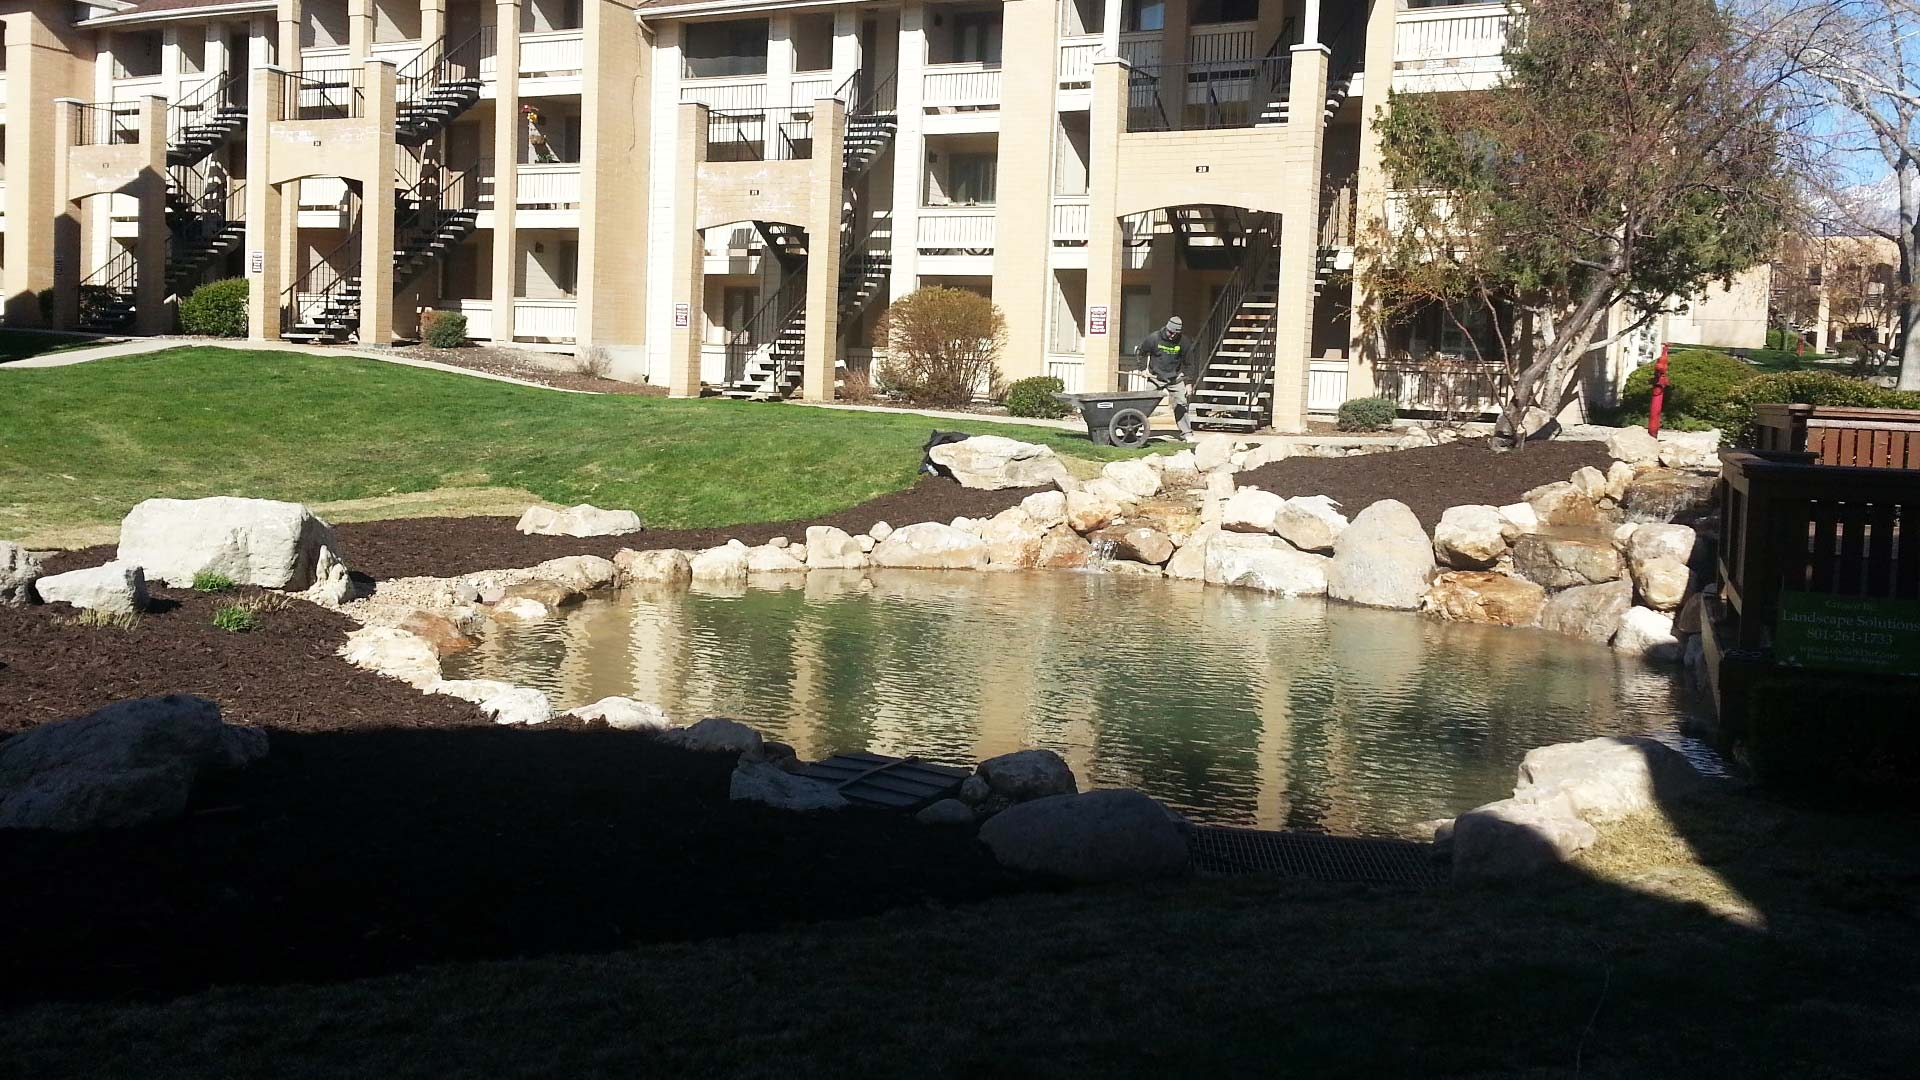 Landscaping around a pond at an apartment complex.